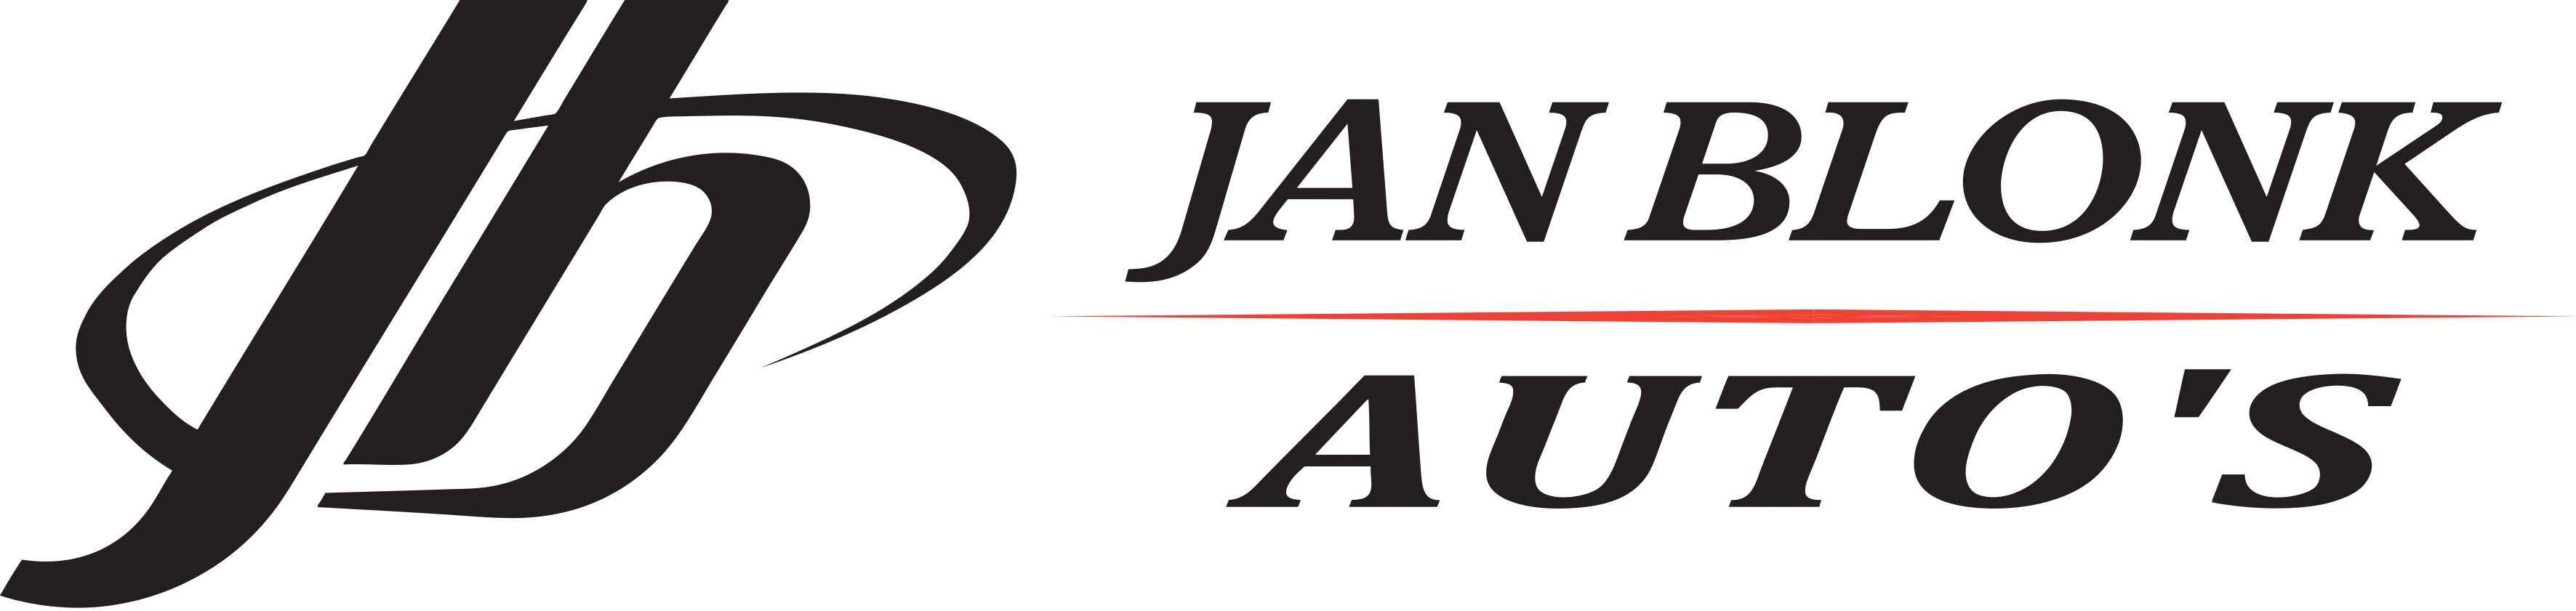 Jan Blonk Auto's logo